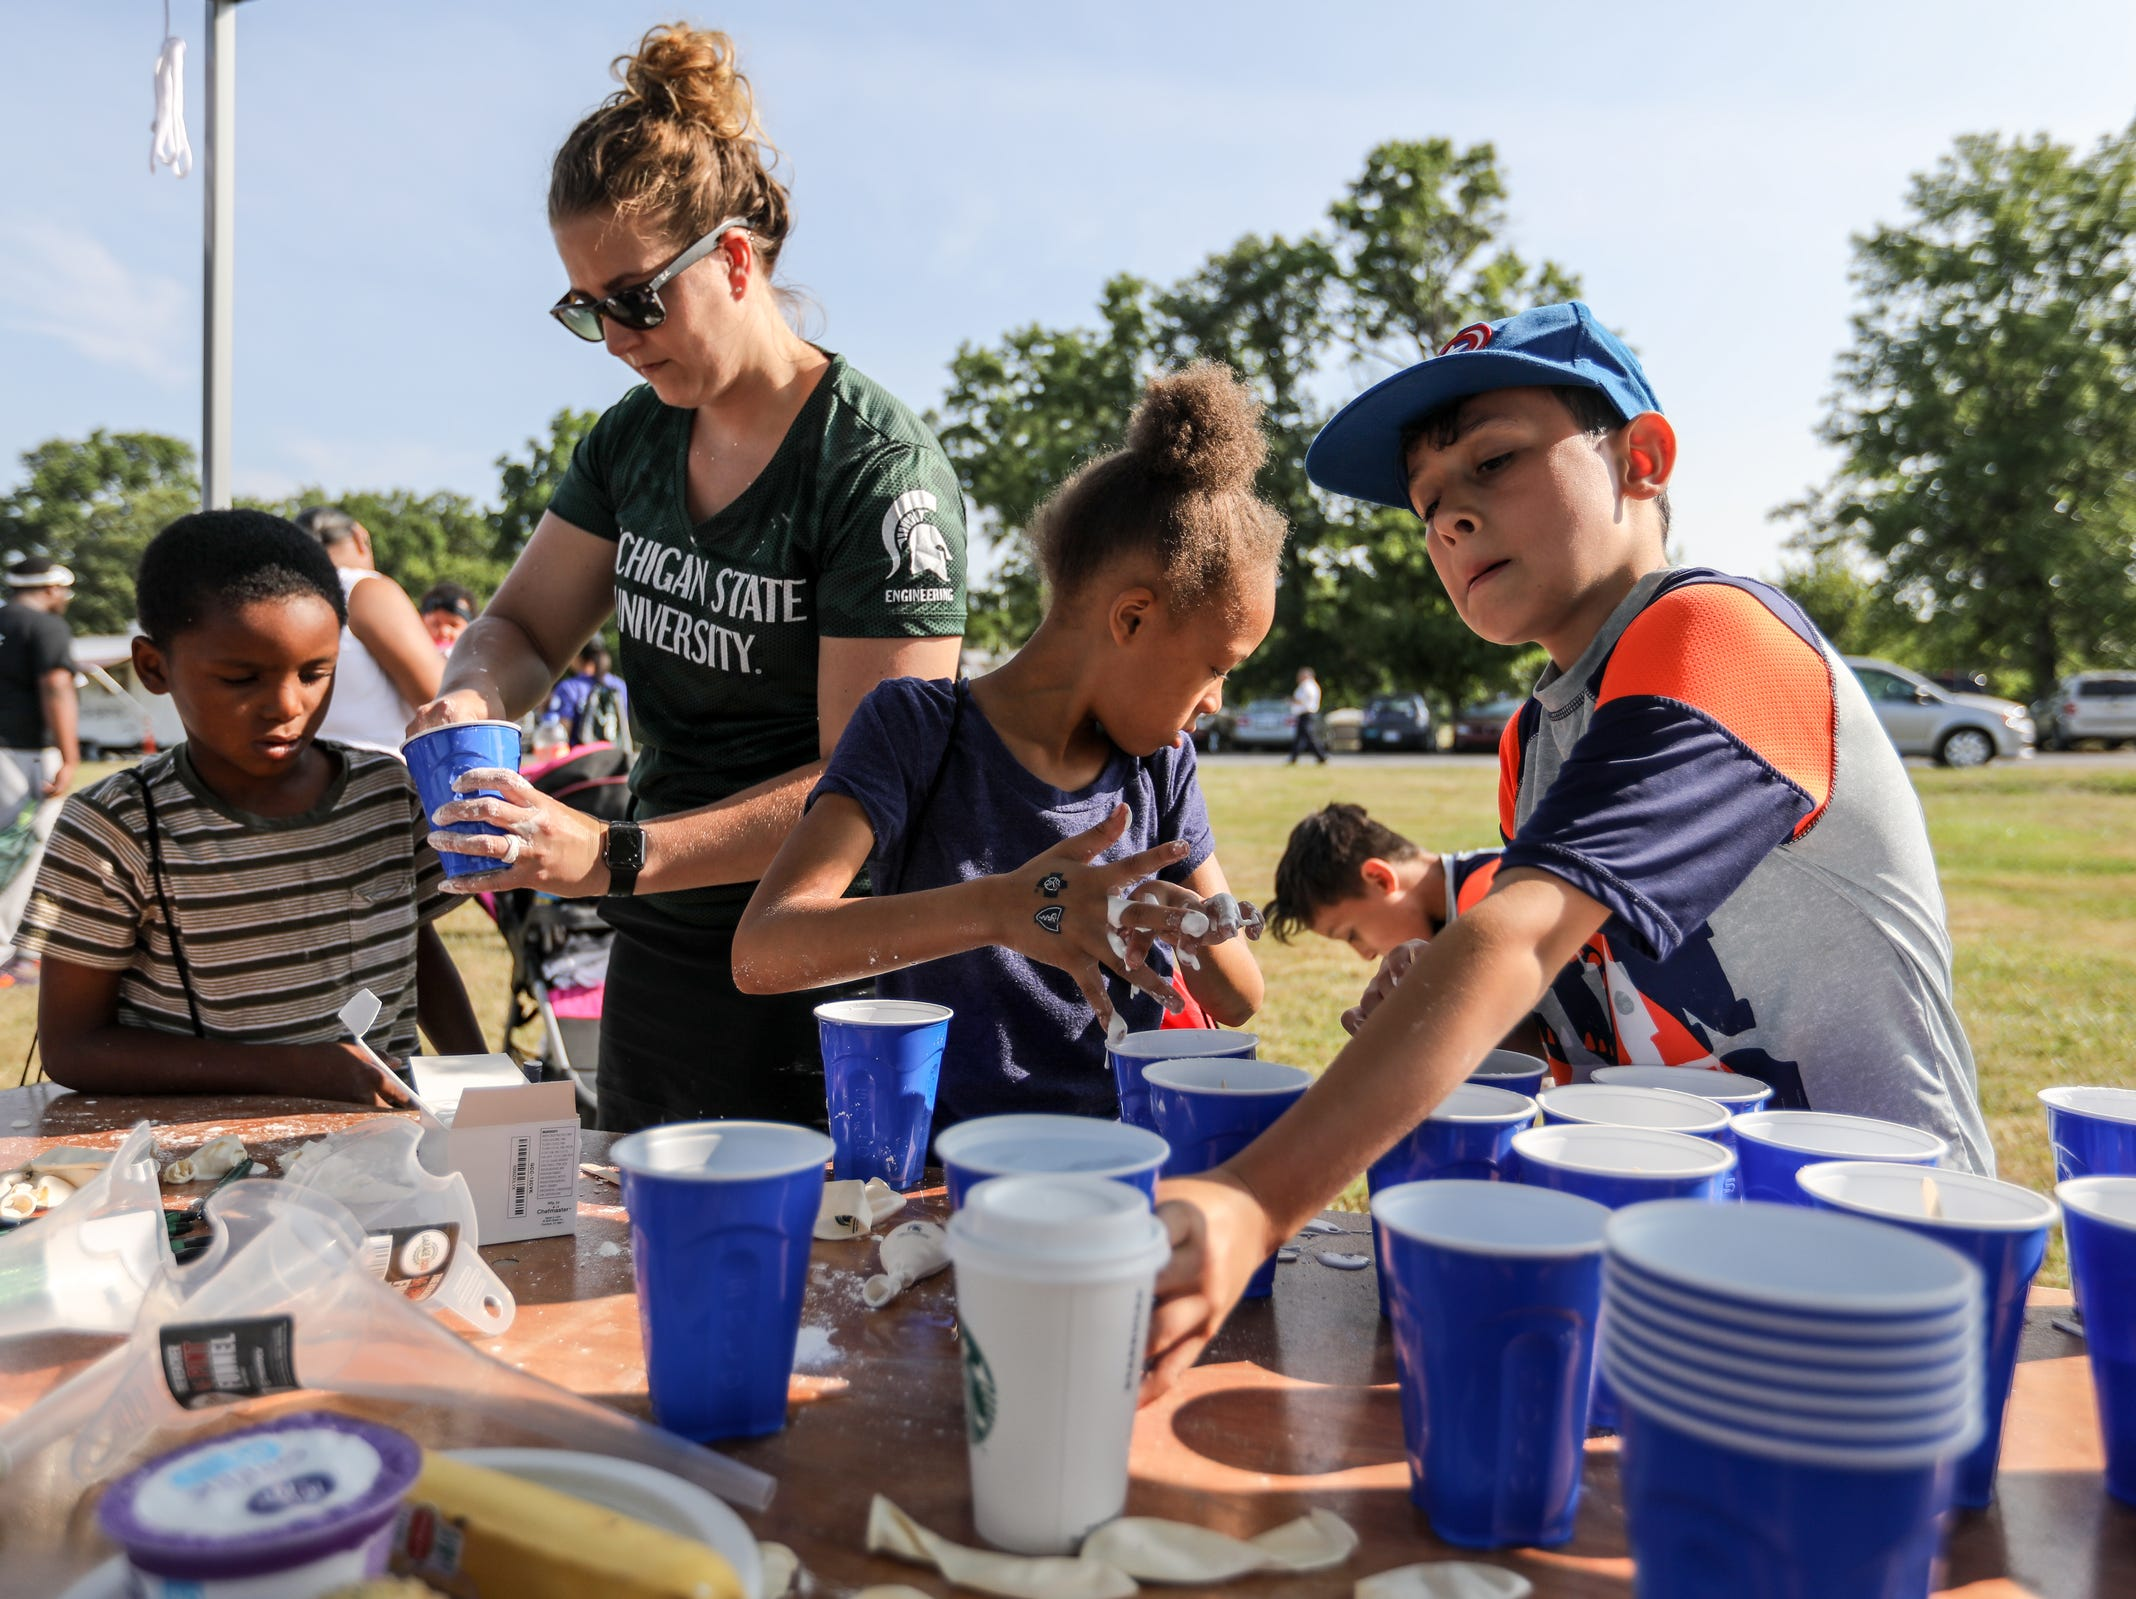 Megan Stadt, 32, of Lansing, who teaches physical science and chemistry at Michigan State University, helps kids make Oobleck during Metro Detroit Youth Day at Belle Isle in Detroit on Wednesday, July 11, 2018.